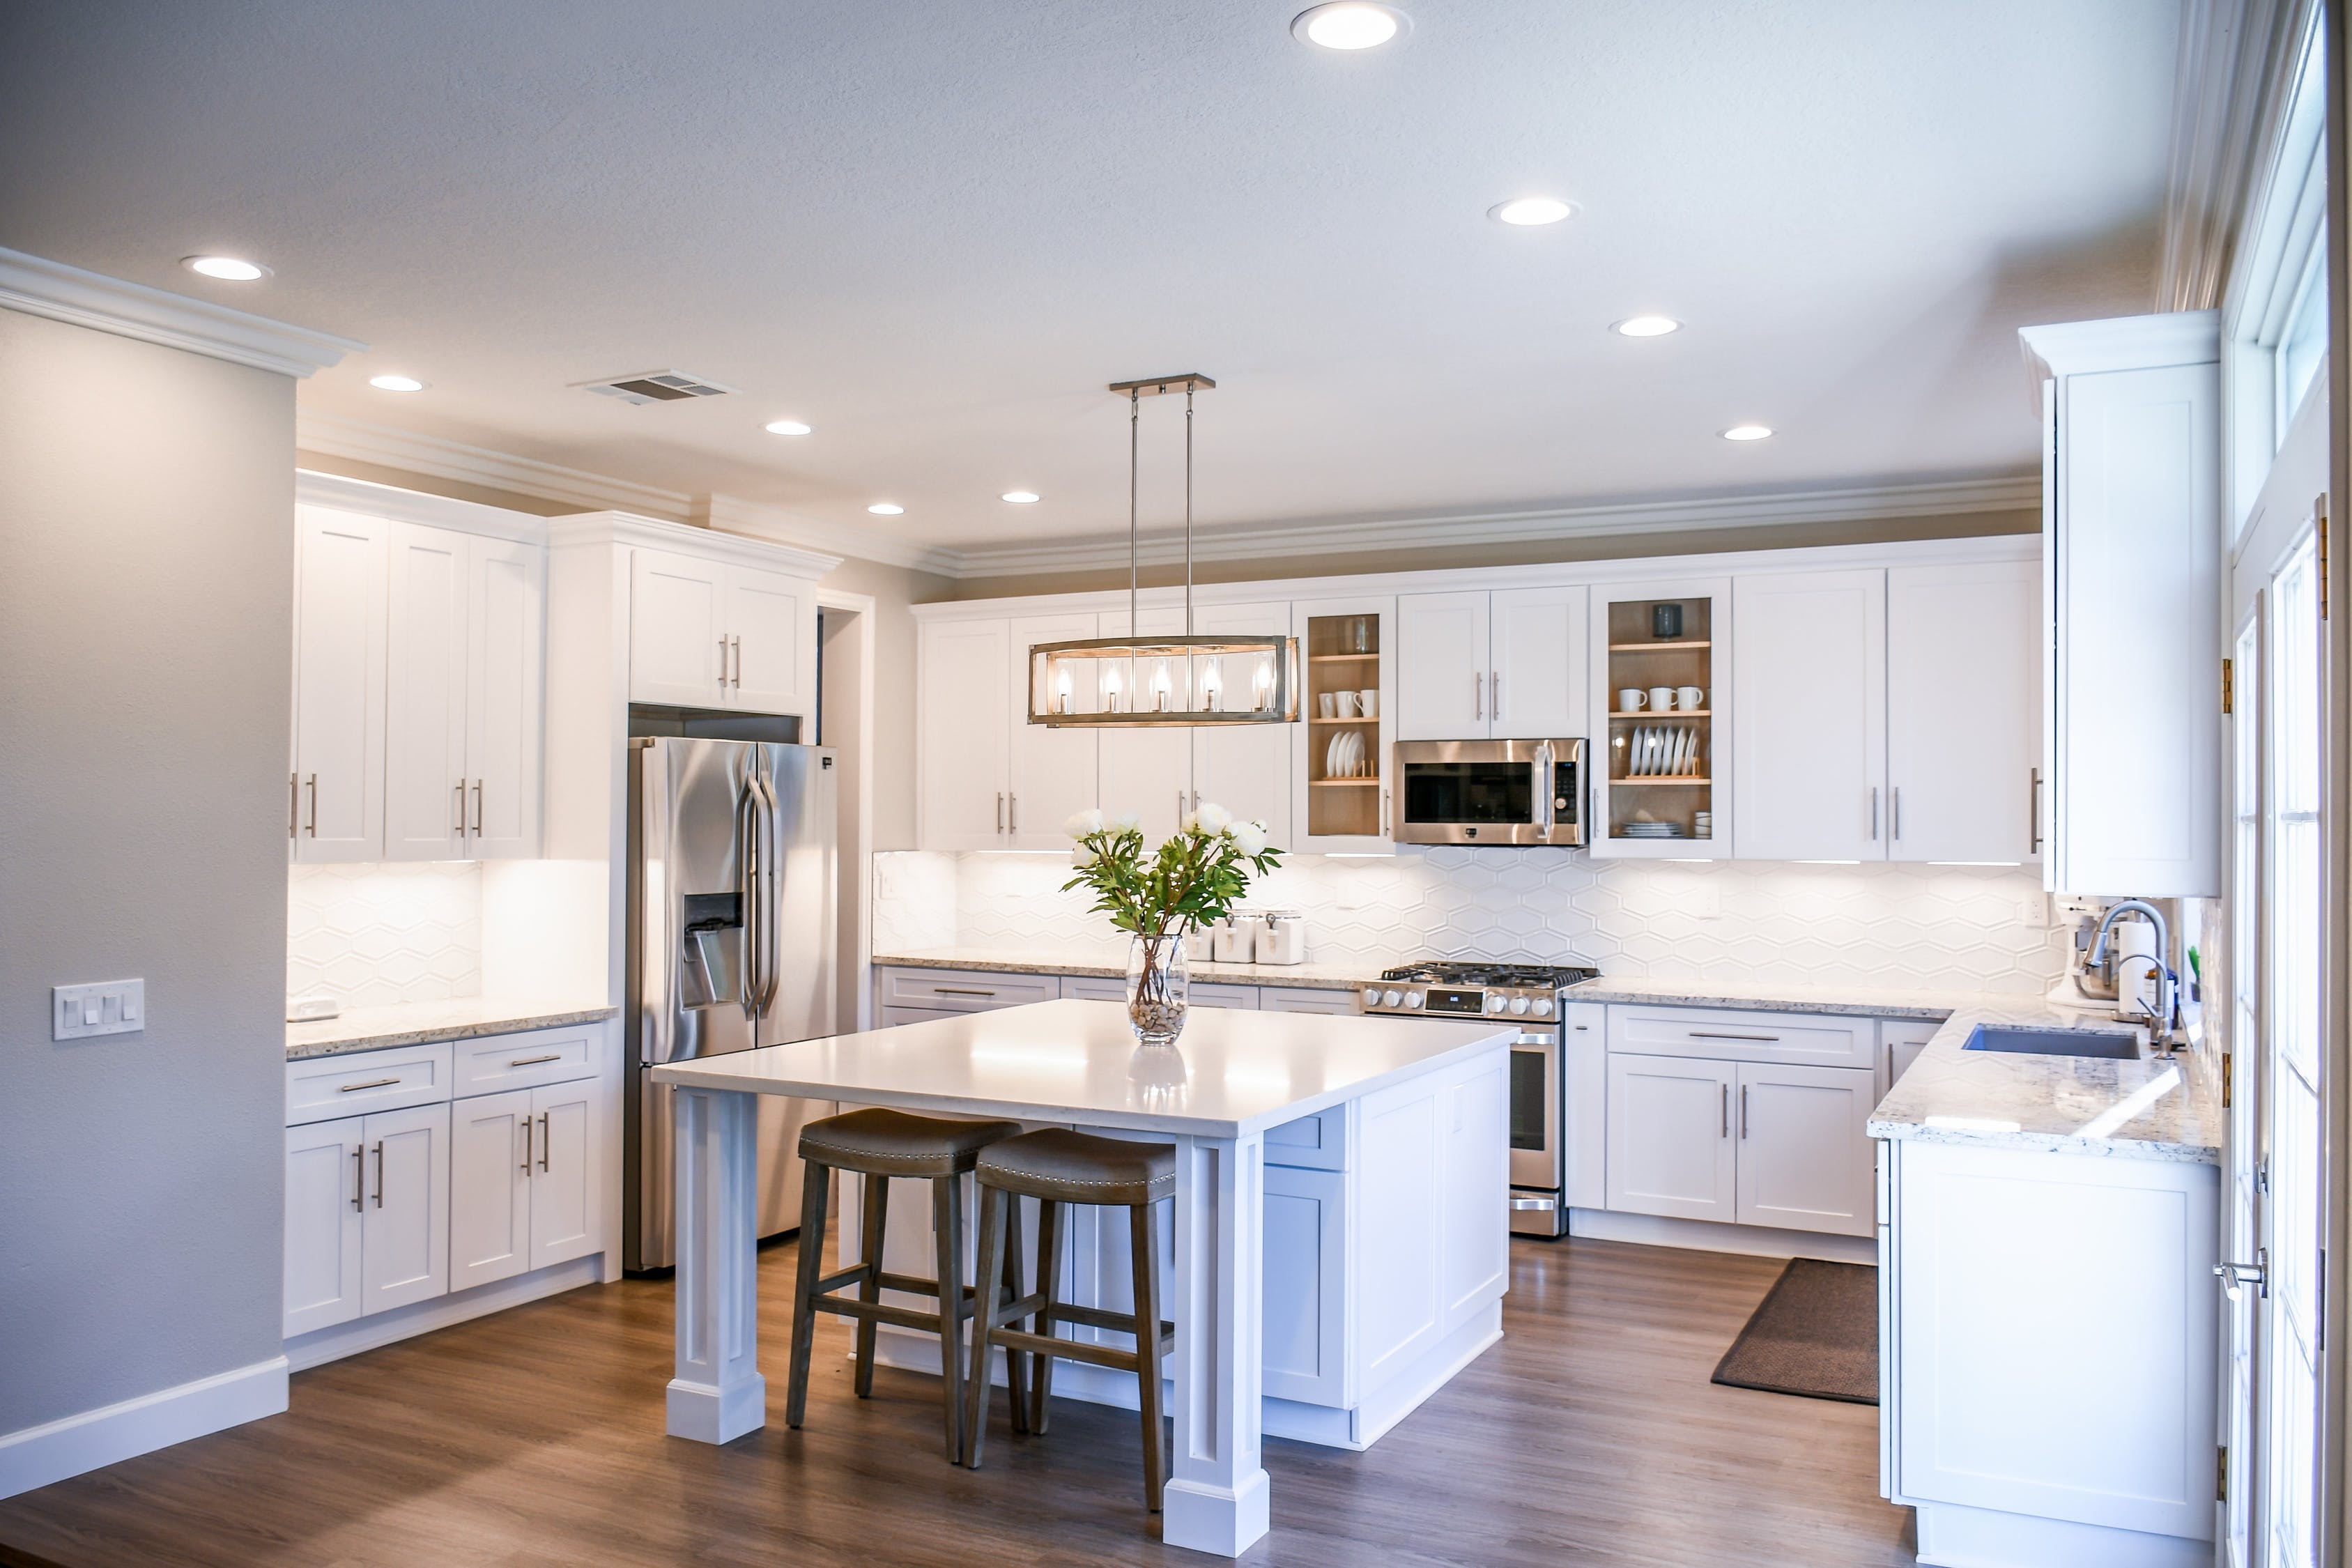 Kitchen With Furniture and Appliances